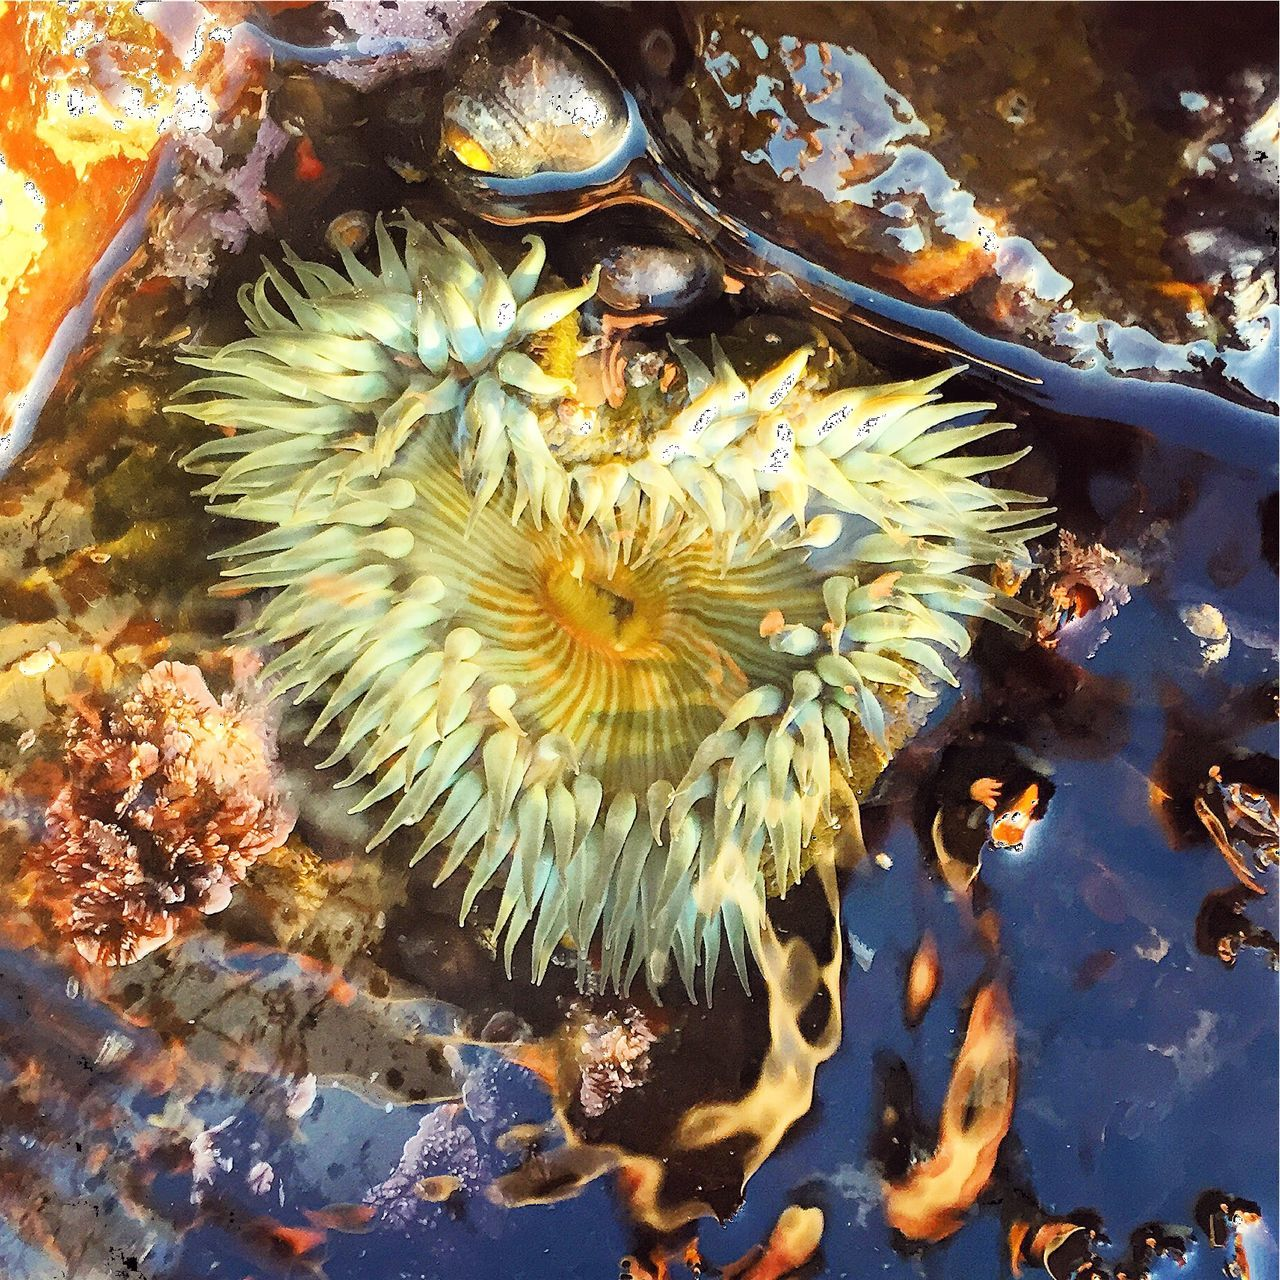 Anemone Heart HeARTsy HeartsINature Hearts In Nature Sea Life Marine Reserve Marine Life Sea Creature Sea Tidepools Tidal Pools Moss Beach Love Finding Love Find It In Everything Hearts Heart Hunter The Daily Heart Heartist Heartistry I Found Love